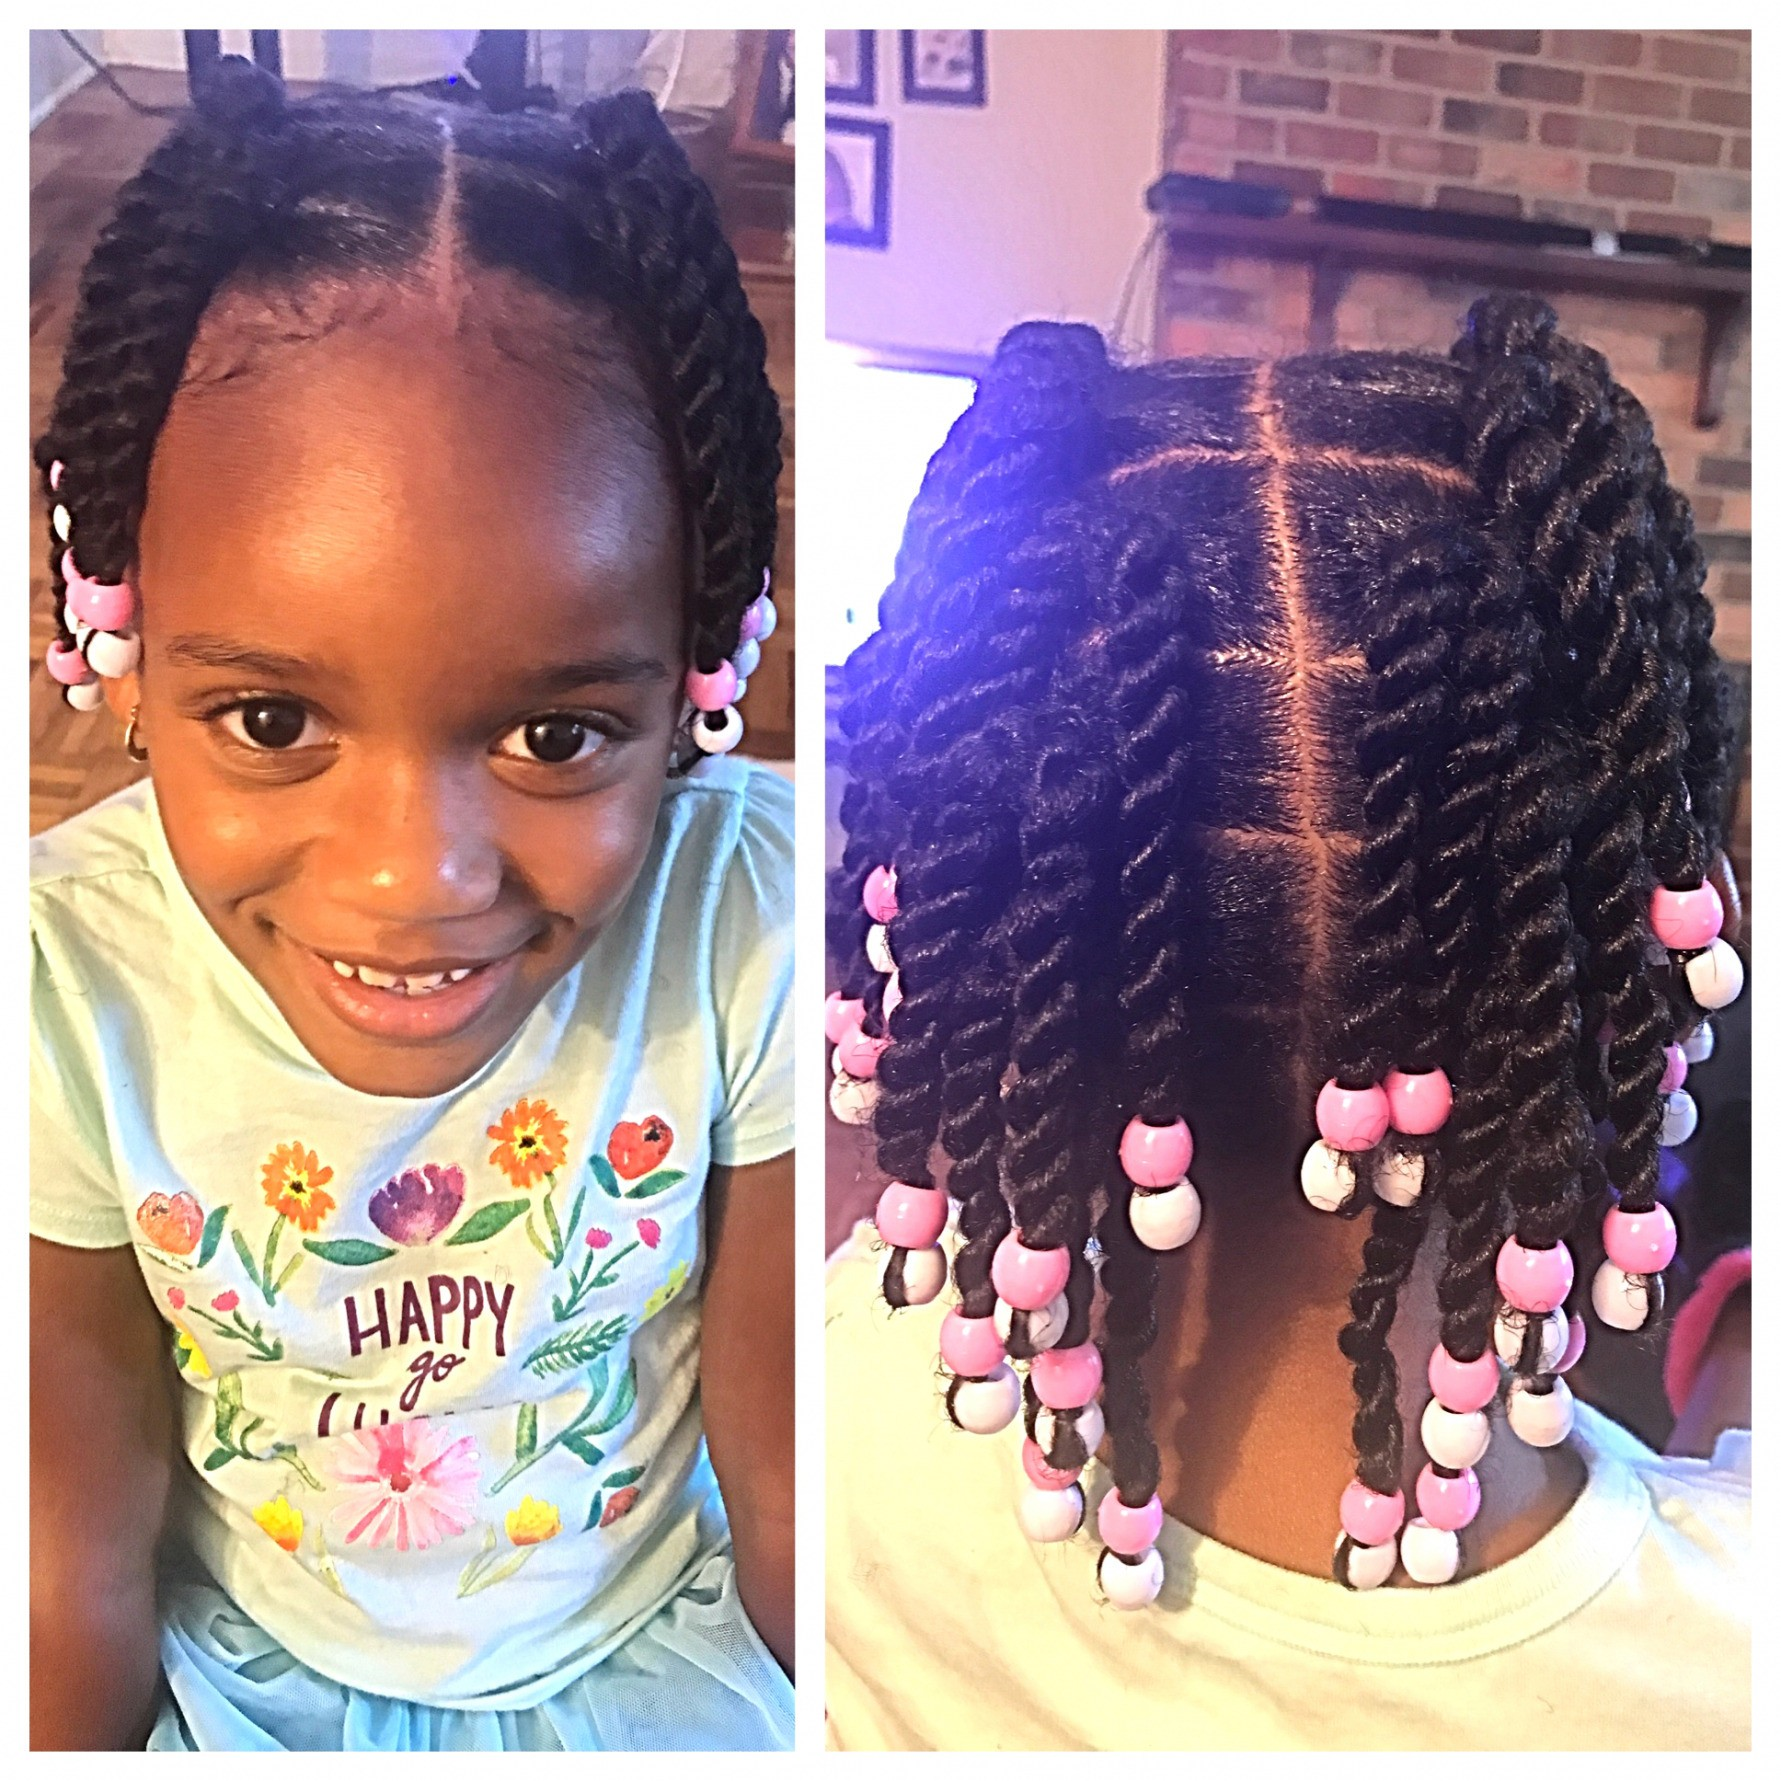 7 Year Old Girl Hairstyles Image Lovely Hairstyles for 10 Year Old Black Girls Kitharingtonweb